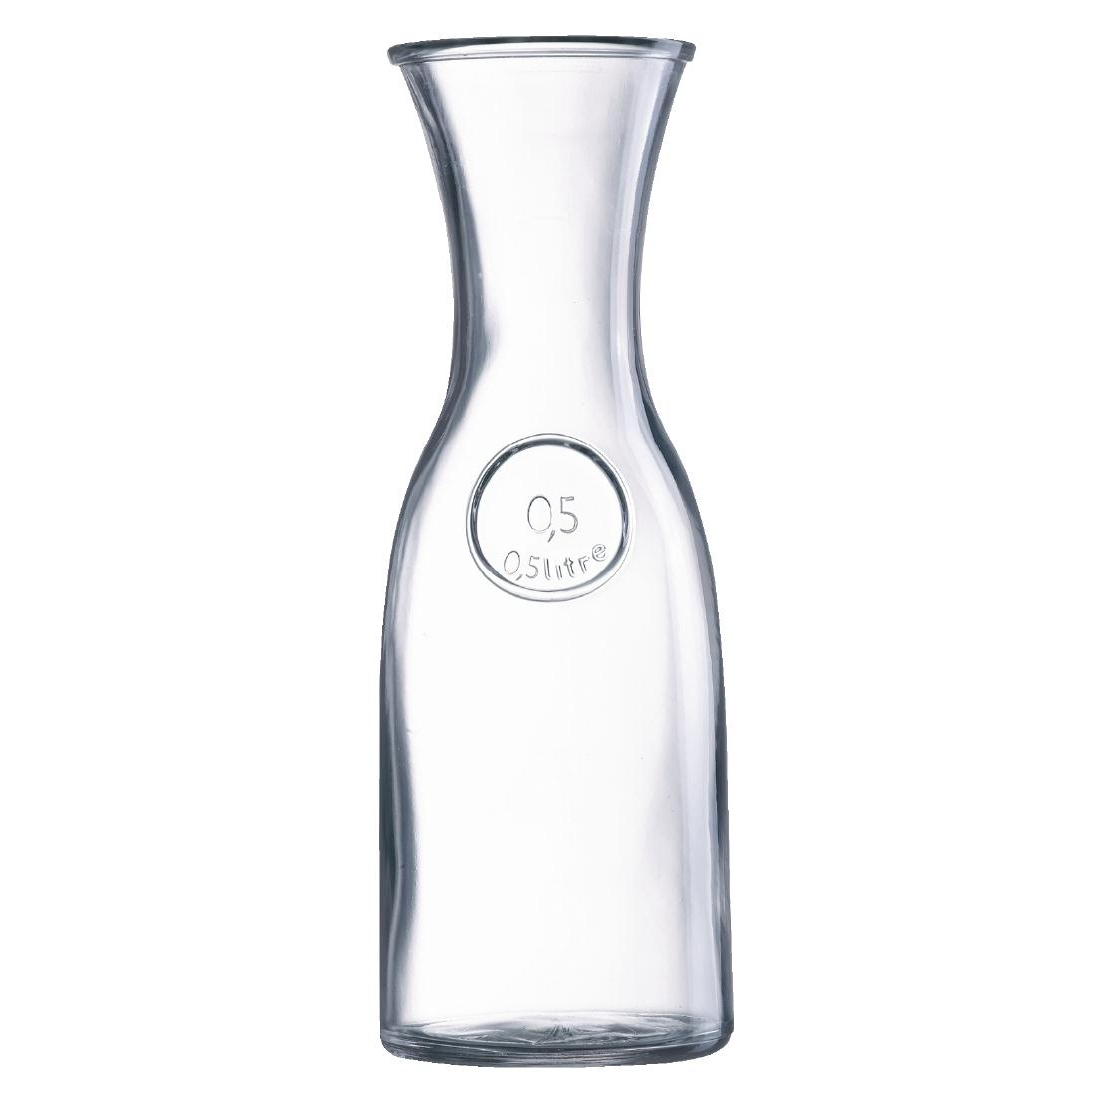 Arcoroc Bystro Carafes 0.5Ltr